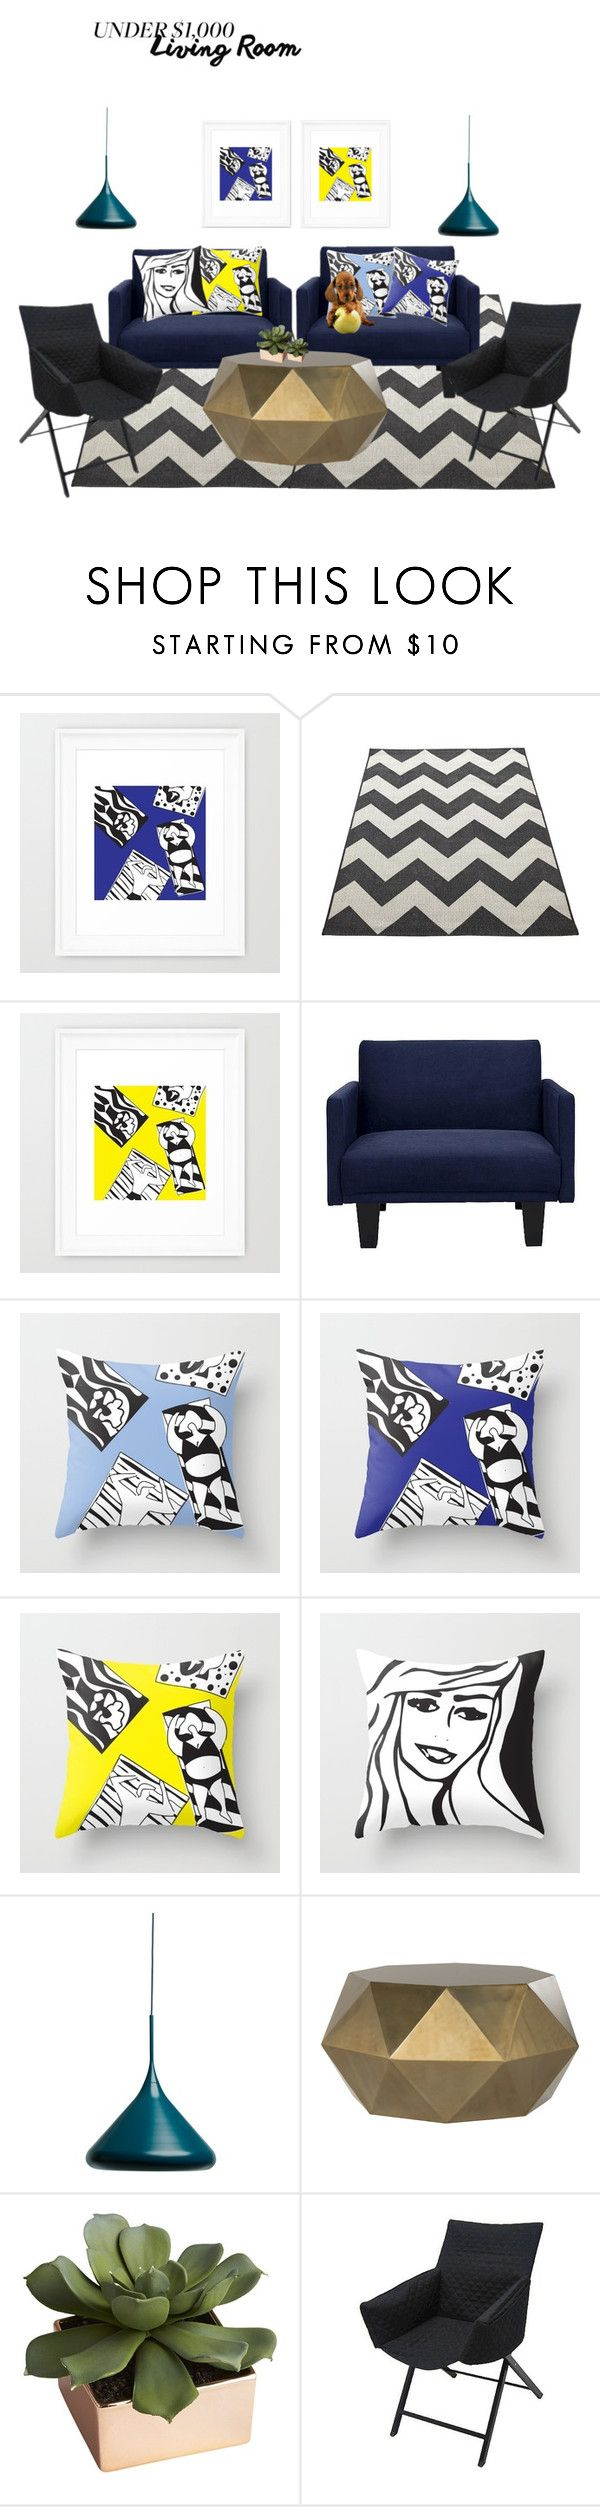 """""""Modern Pop Art Living Room On a Budget"""" by tatianamab on Polyvore featuring interior, interiors, interior design, home, home decor, interior decorating, CB2, living room, modern and livingroom"""